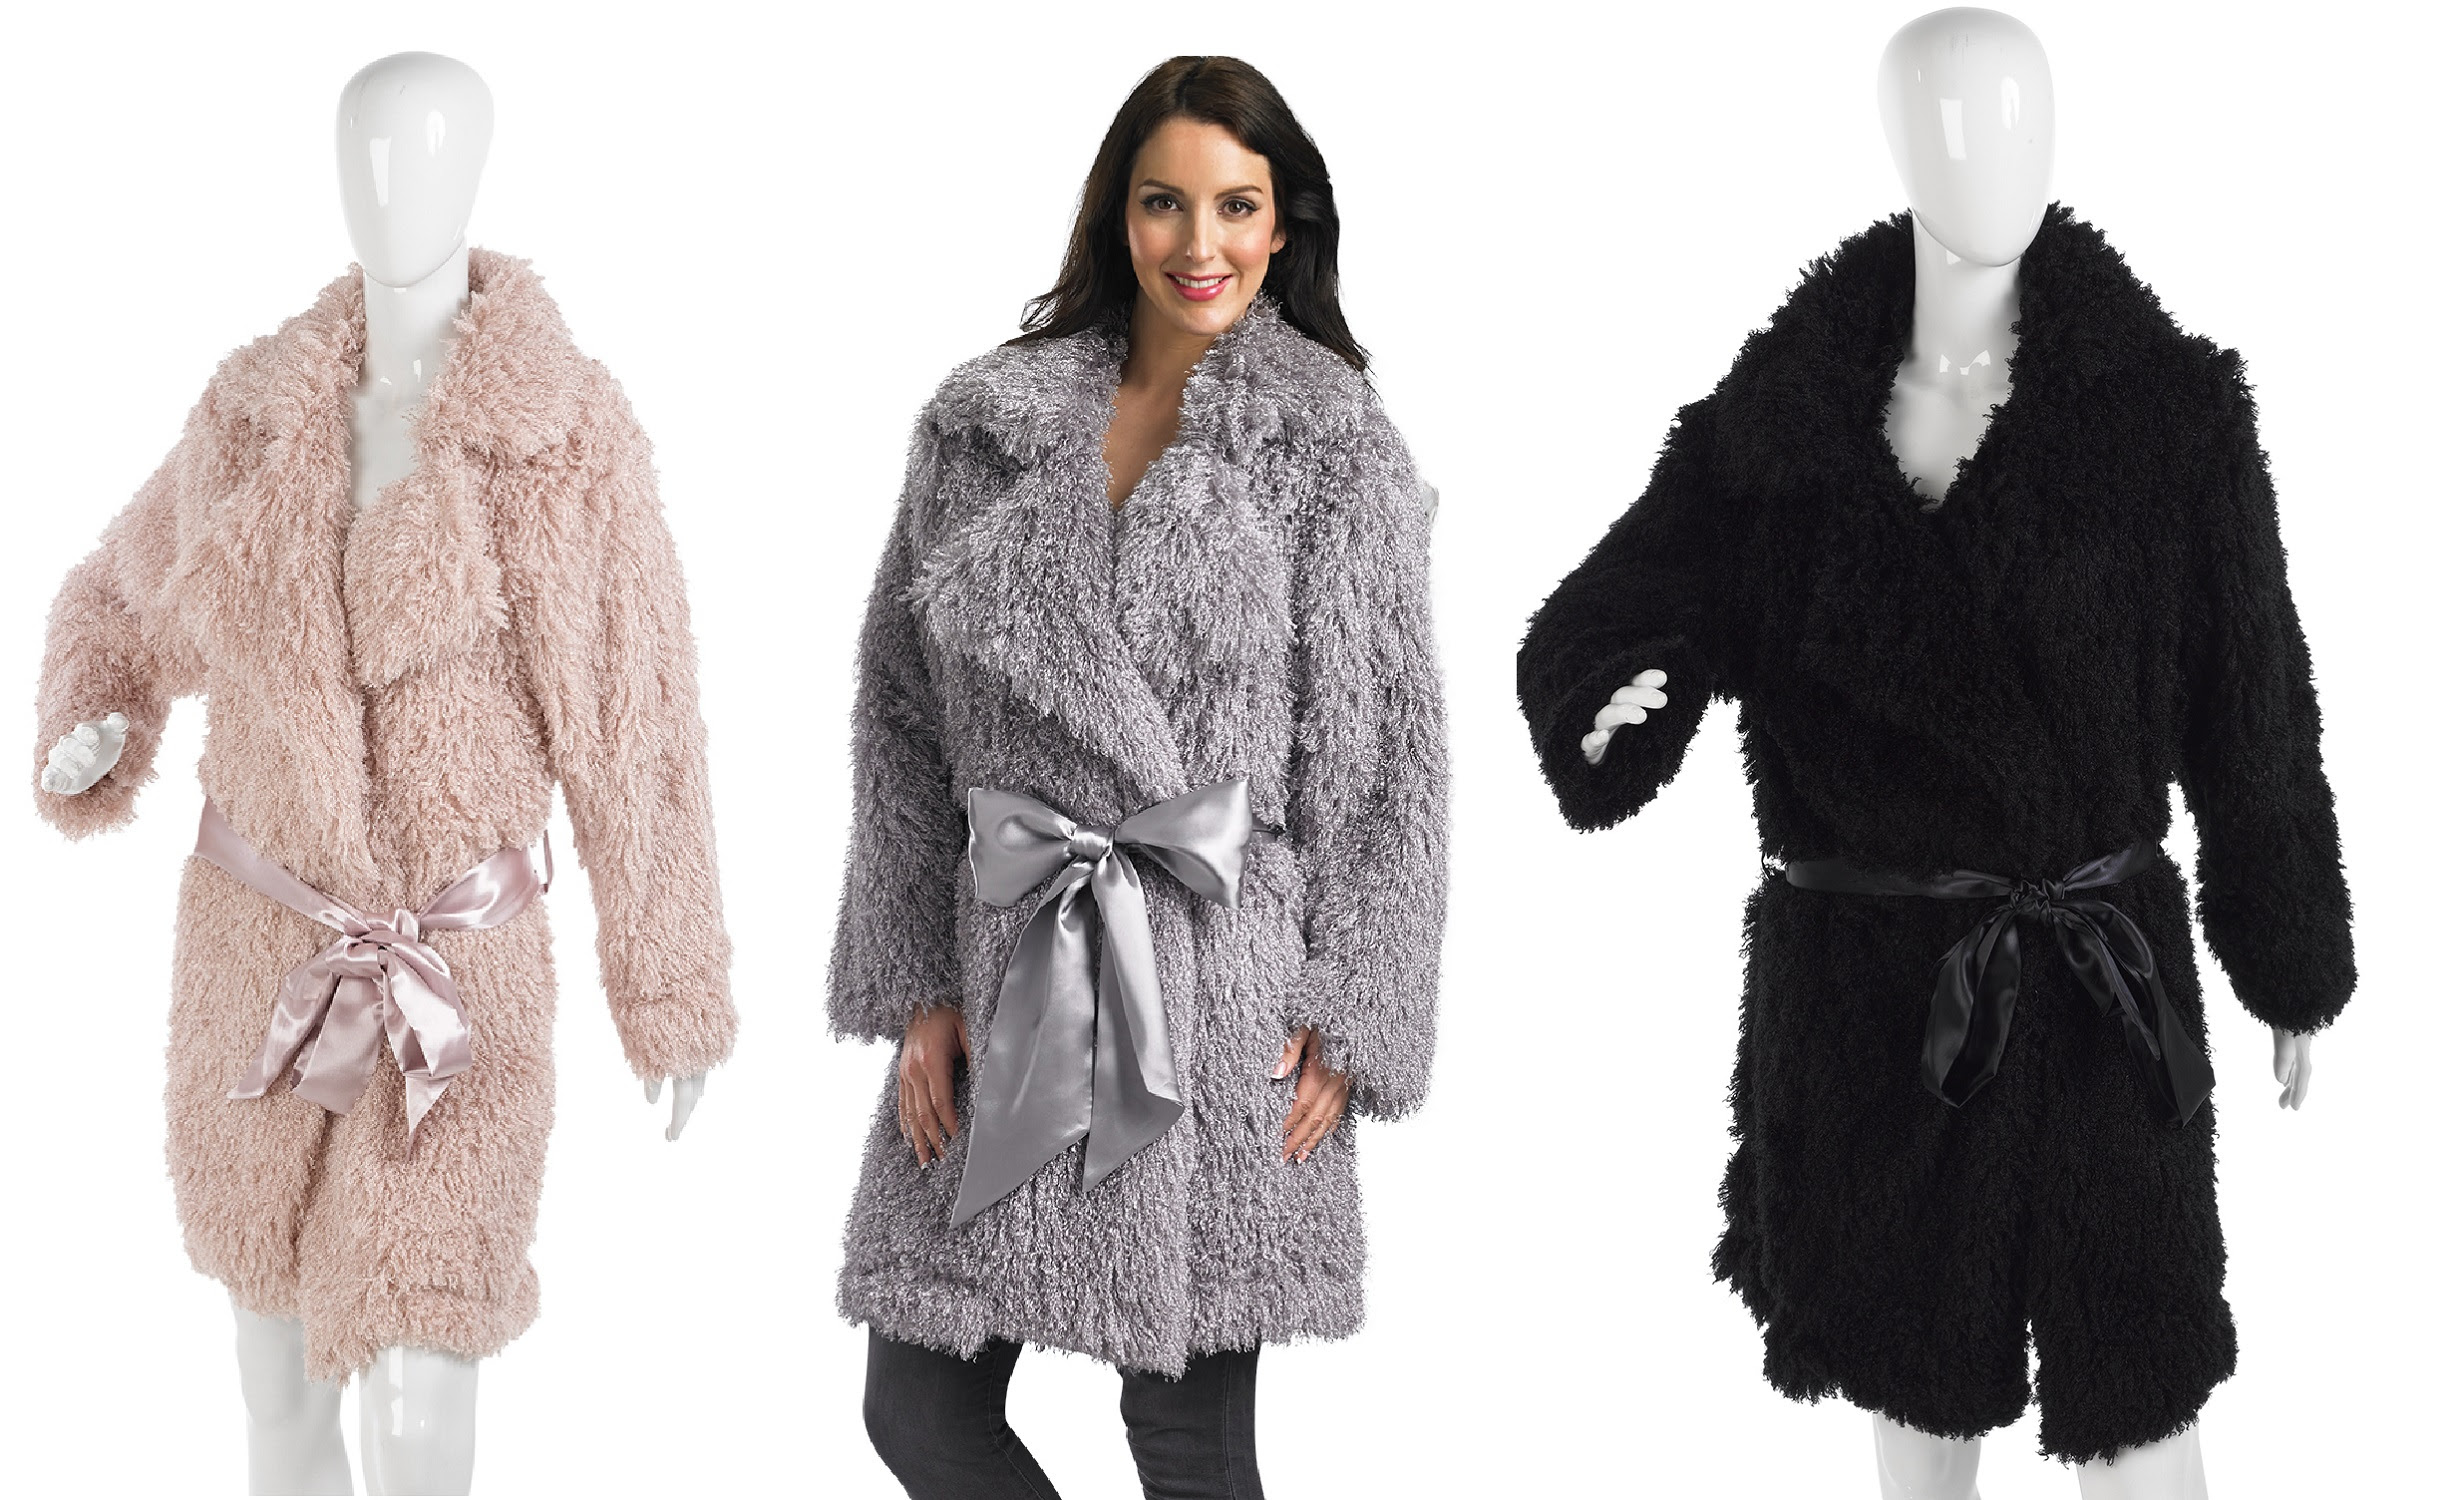 Fluffy Dressing Gowns Ladies - Home Decorating Ideas & Interior Design